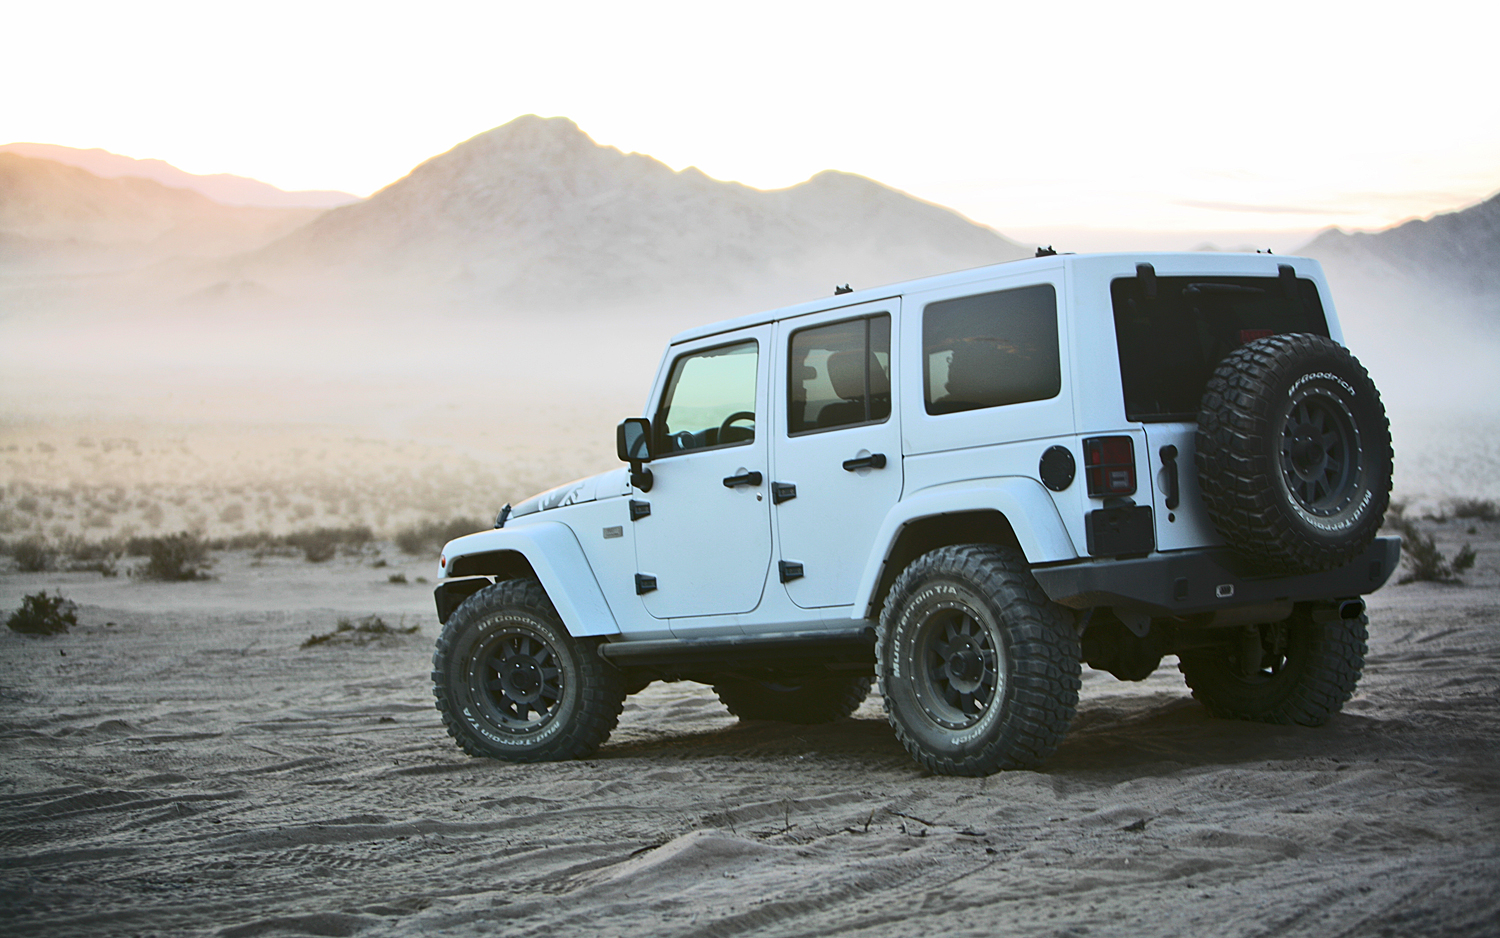 XPLORE-2012-Jeep-Wrangler-Unlimited-Rubicon-rear-view